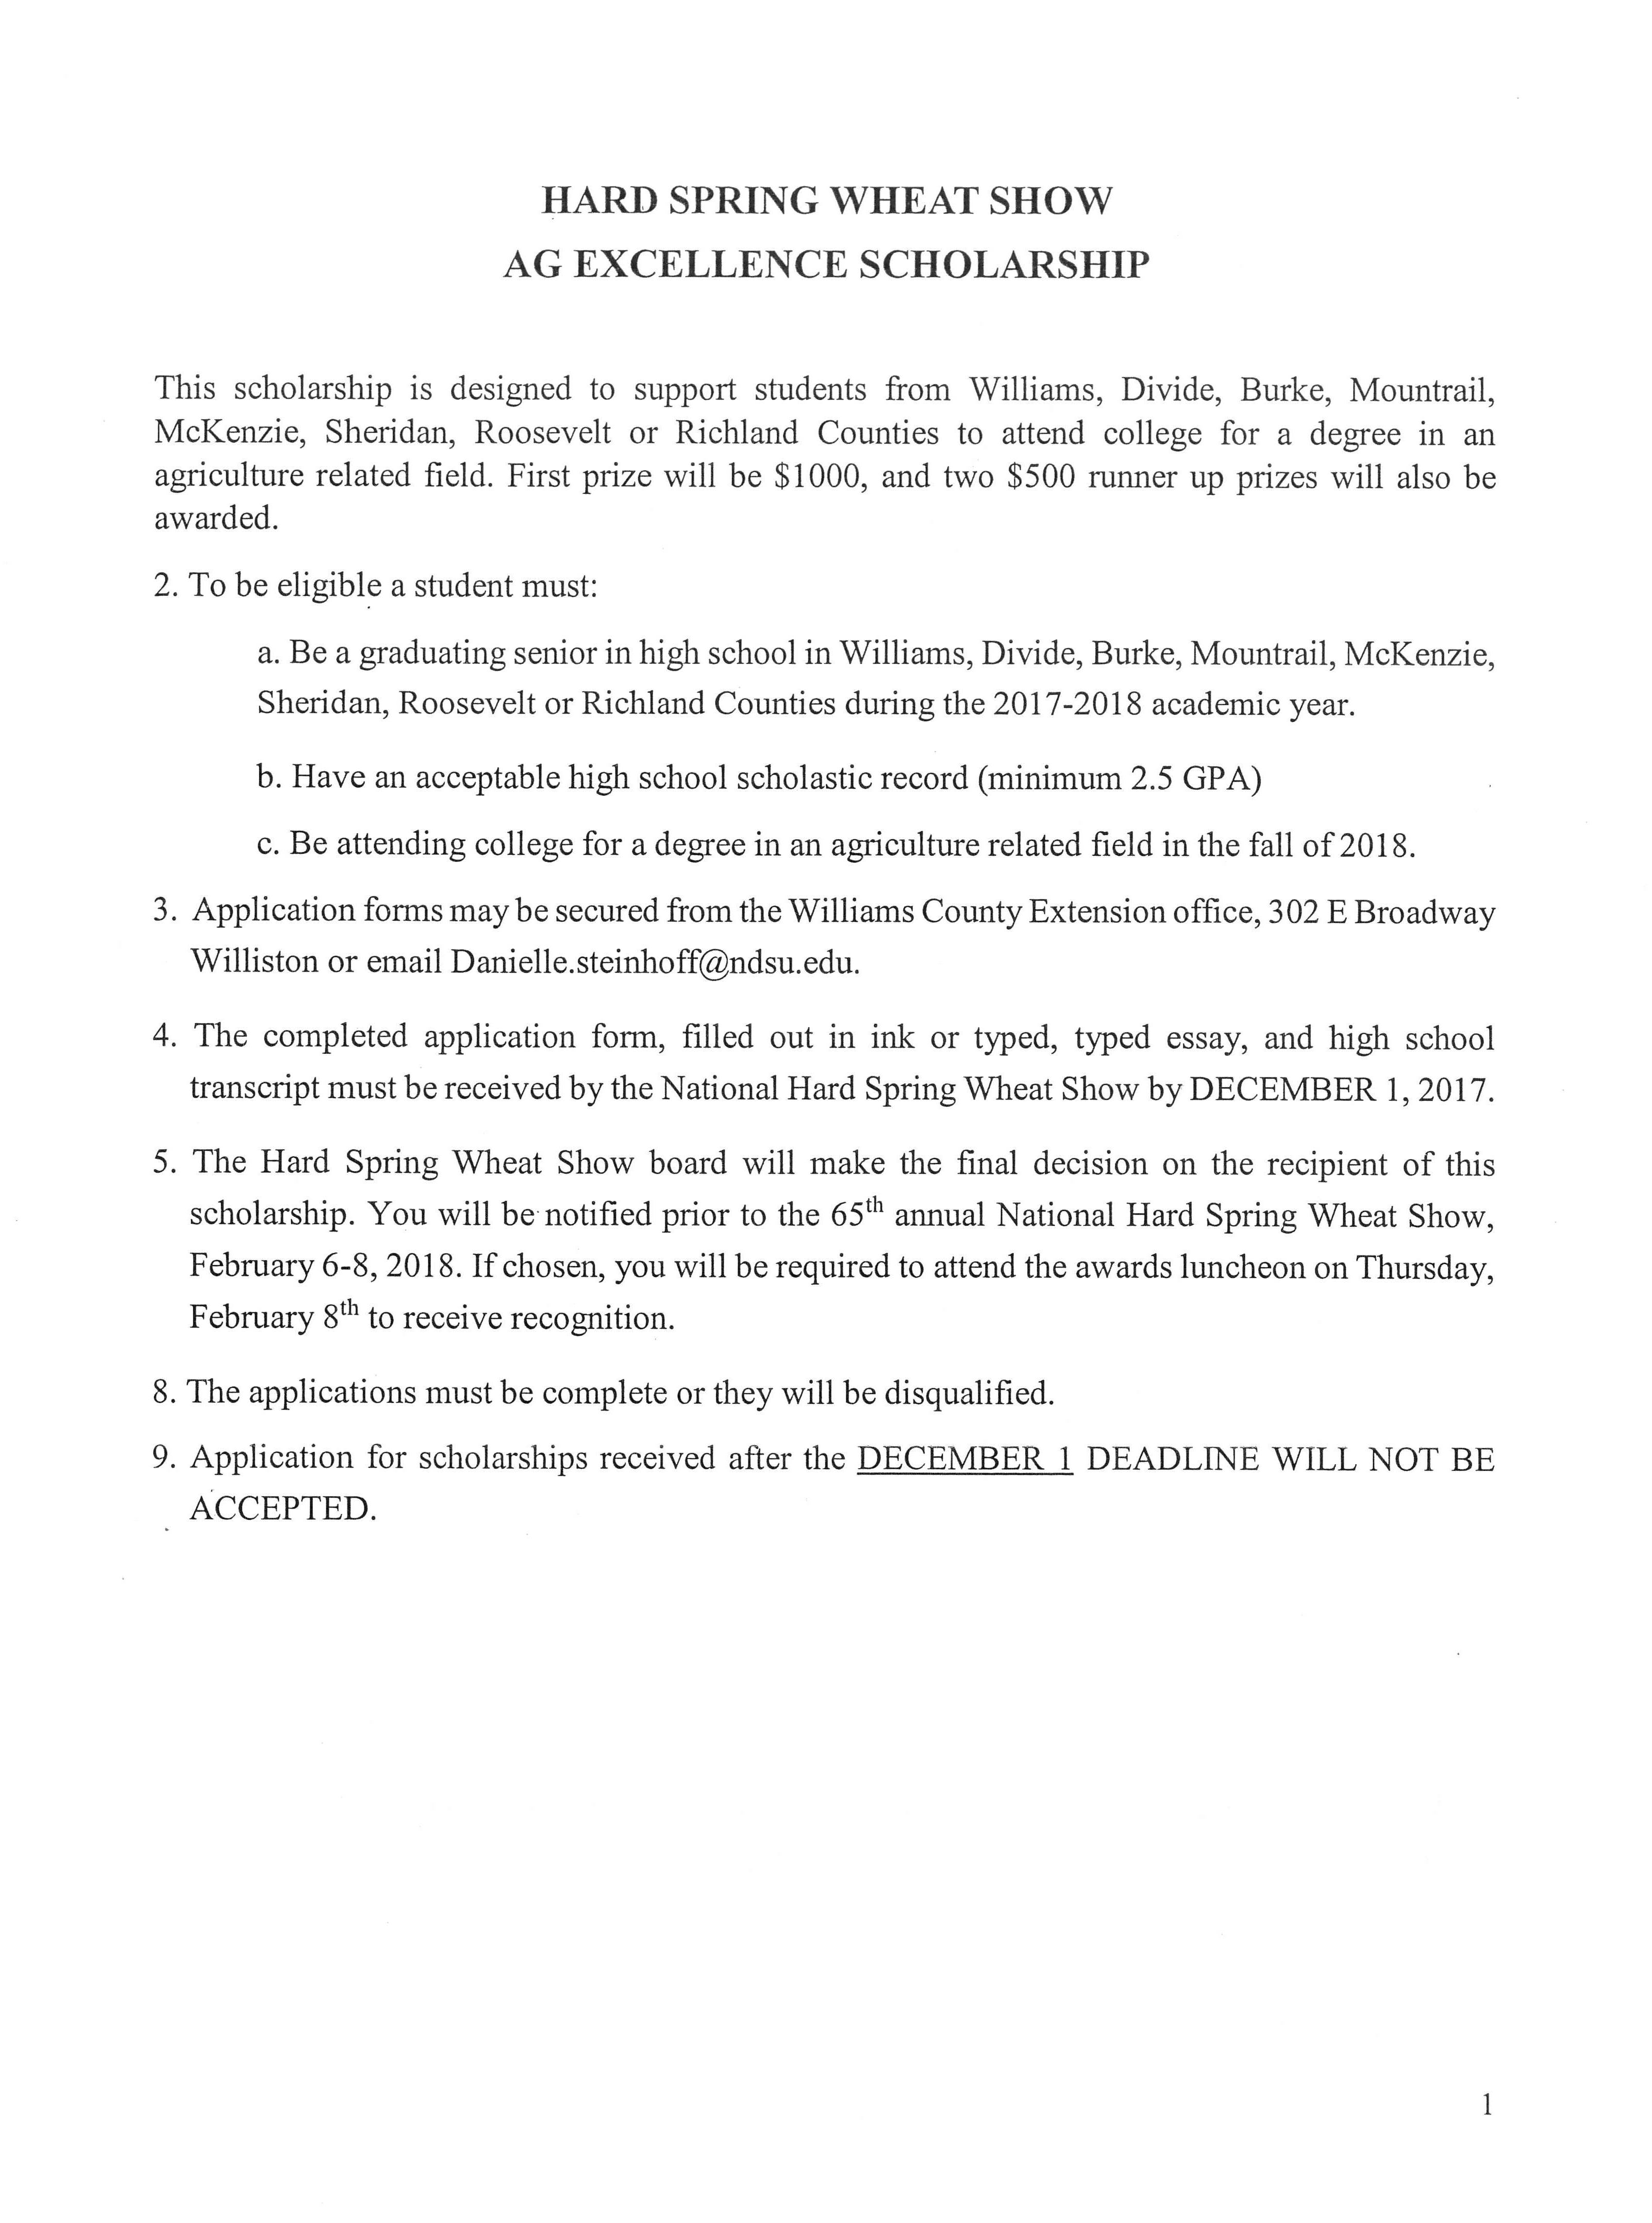 025 Short Essay Scholarships Page 1 Amazing College Easy Full